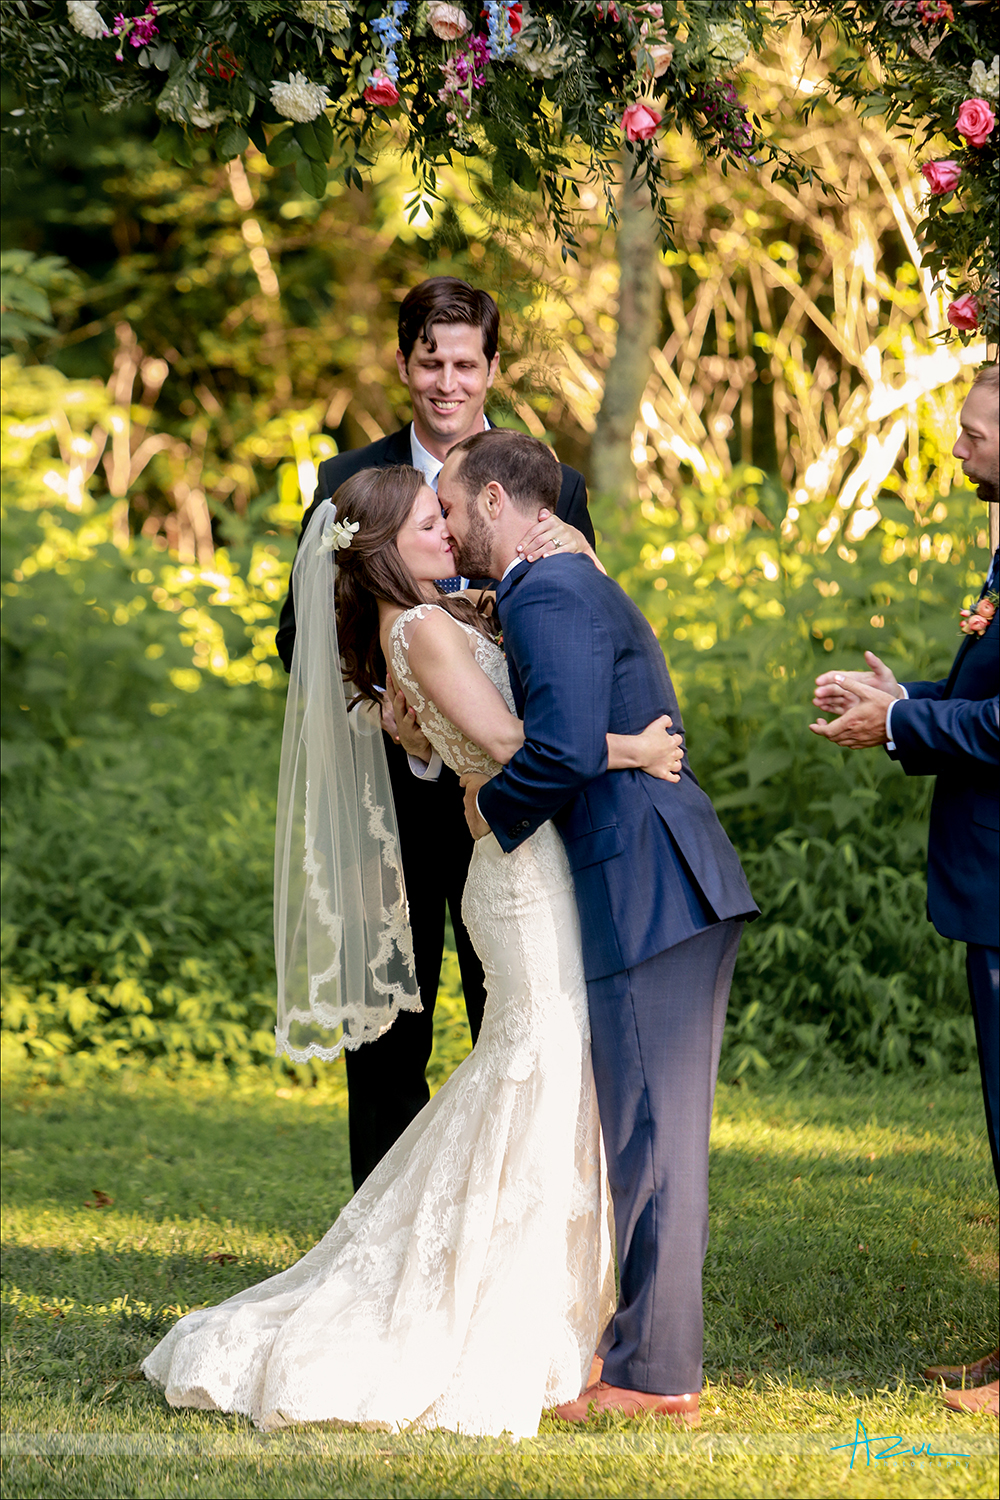 Beautiful light for outdoor wedding day ceremony photography in Chapel Hill, NC